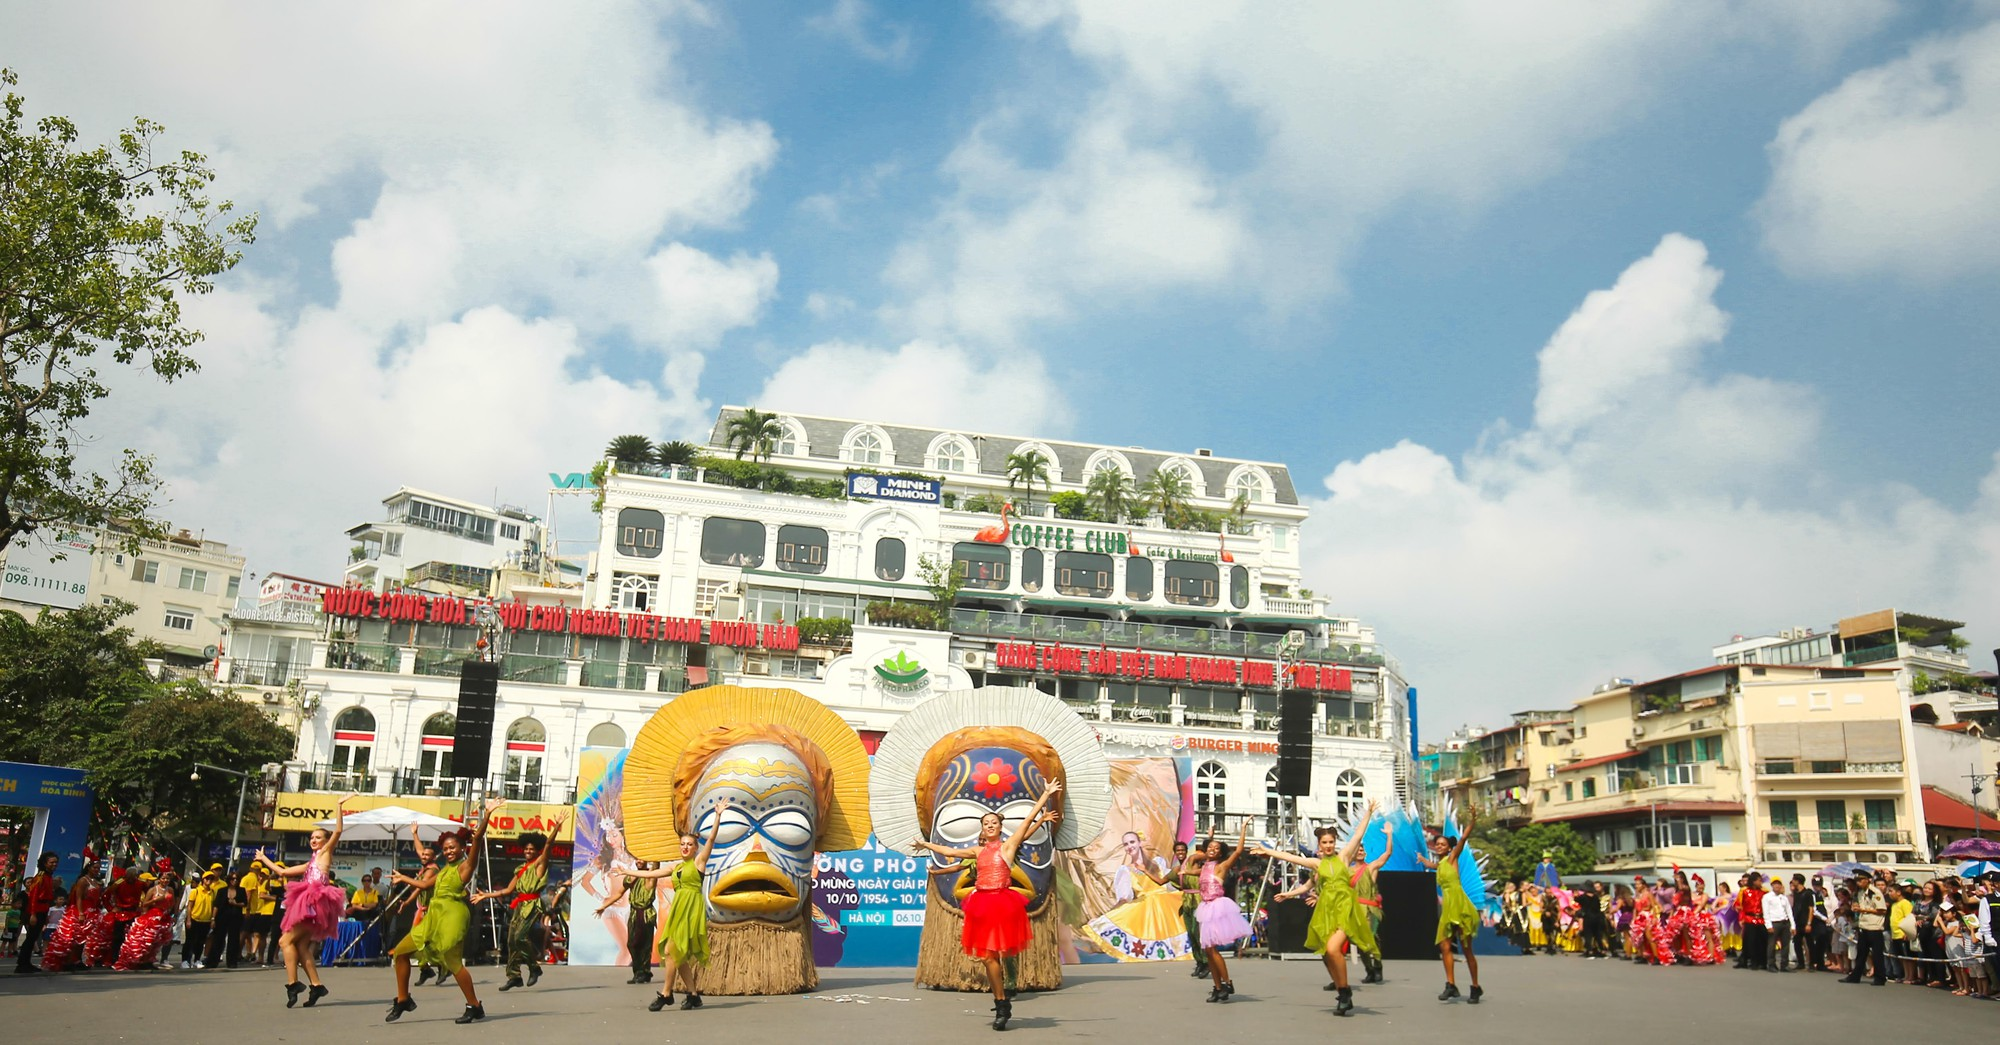 carnival sun world ha noi 610 (68)